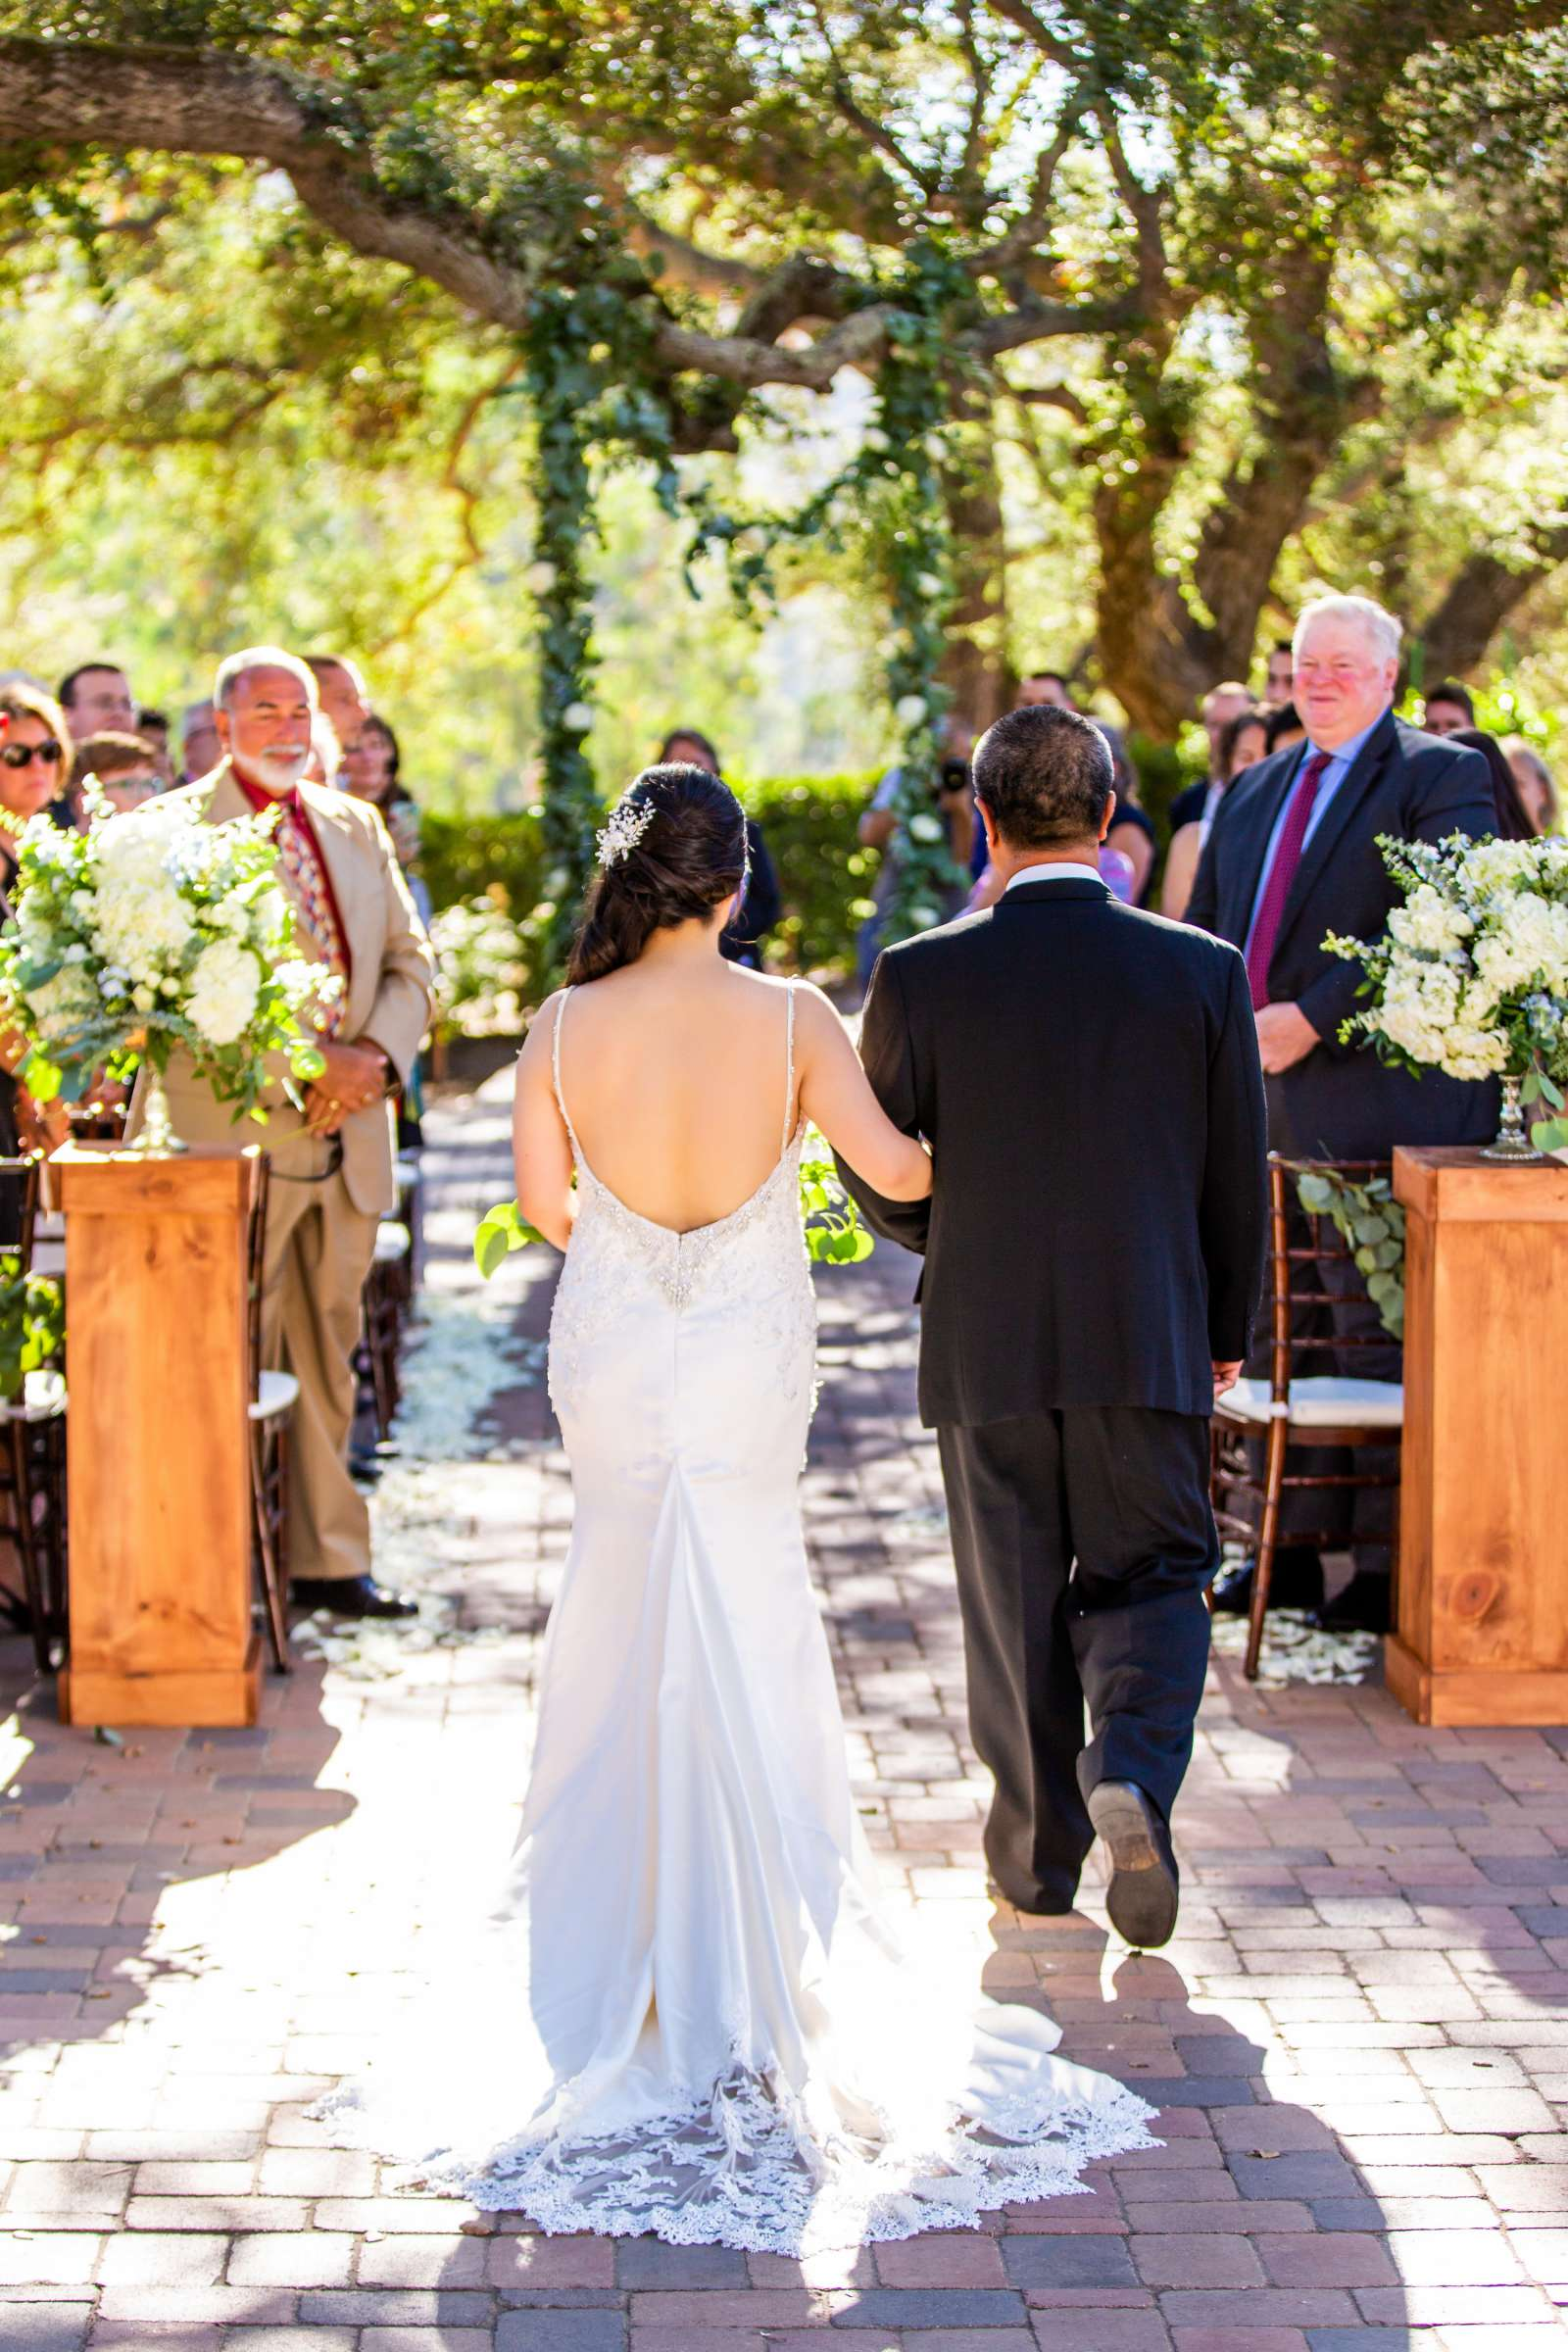 Mt Woodson Castle Wedding coordinated by I Do Weddings, Aya and Jared Wedding Photo #486933 by True Photography